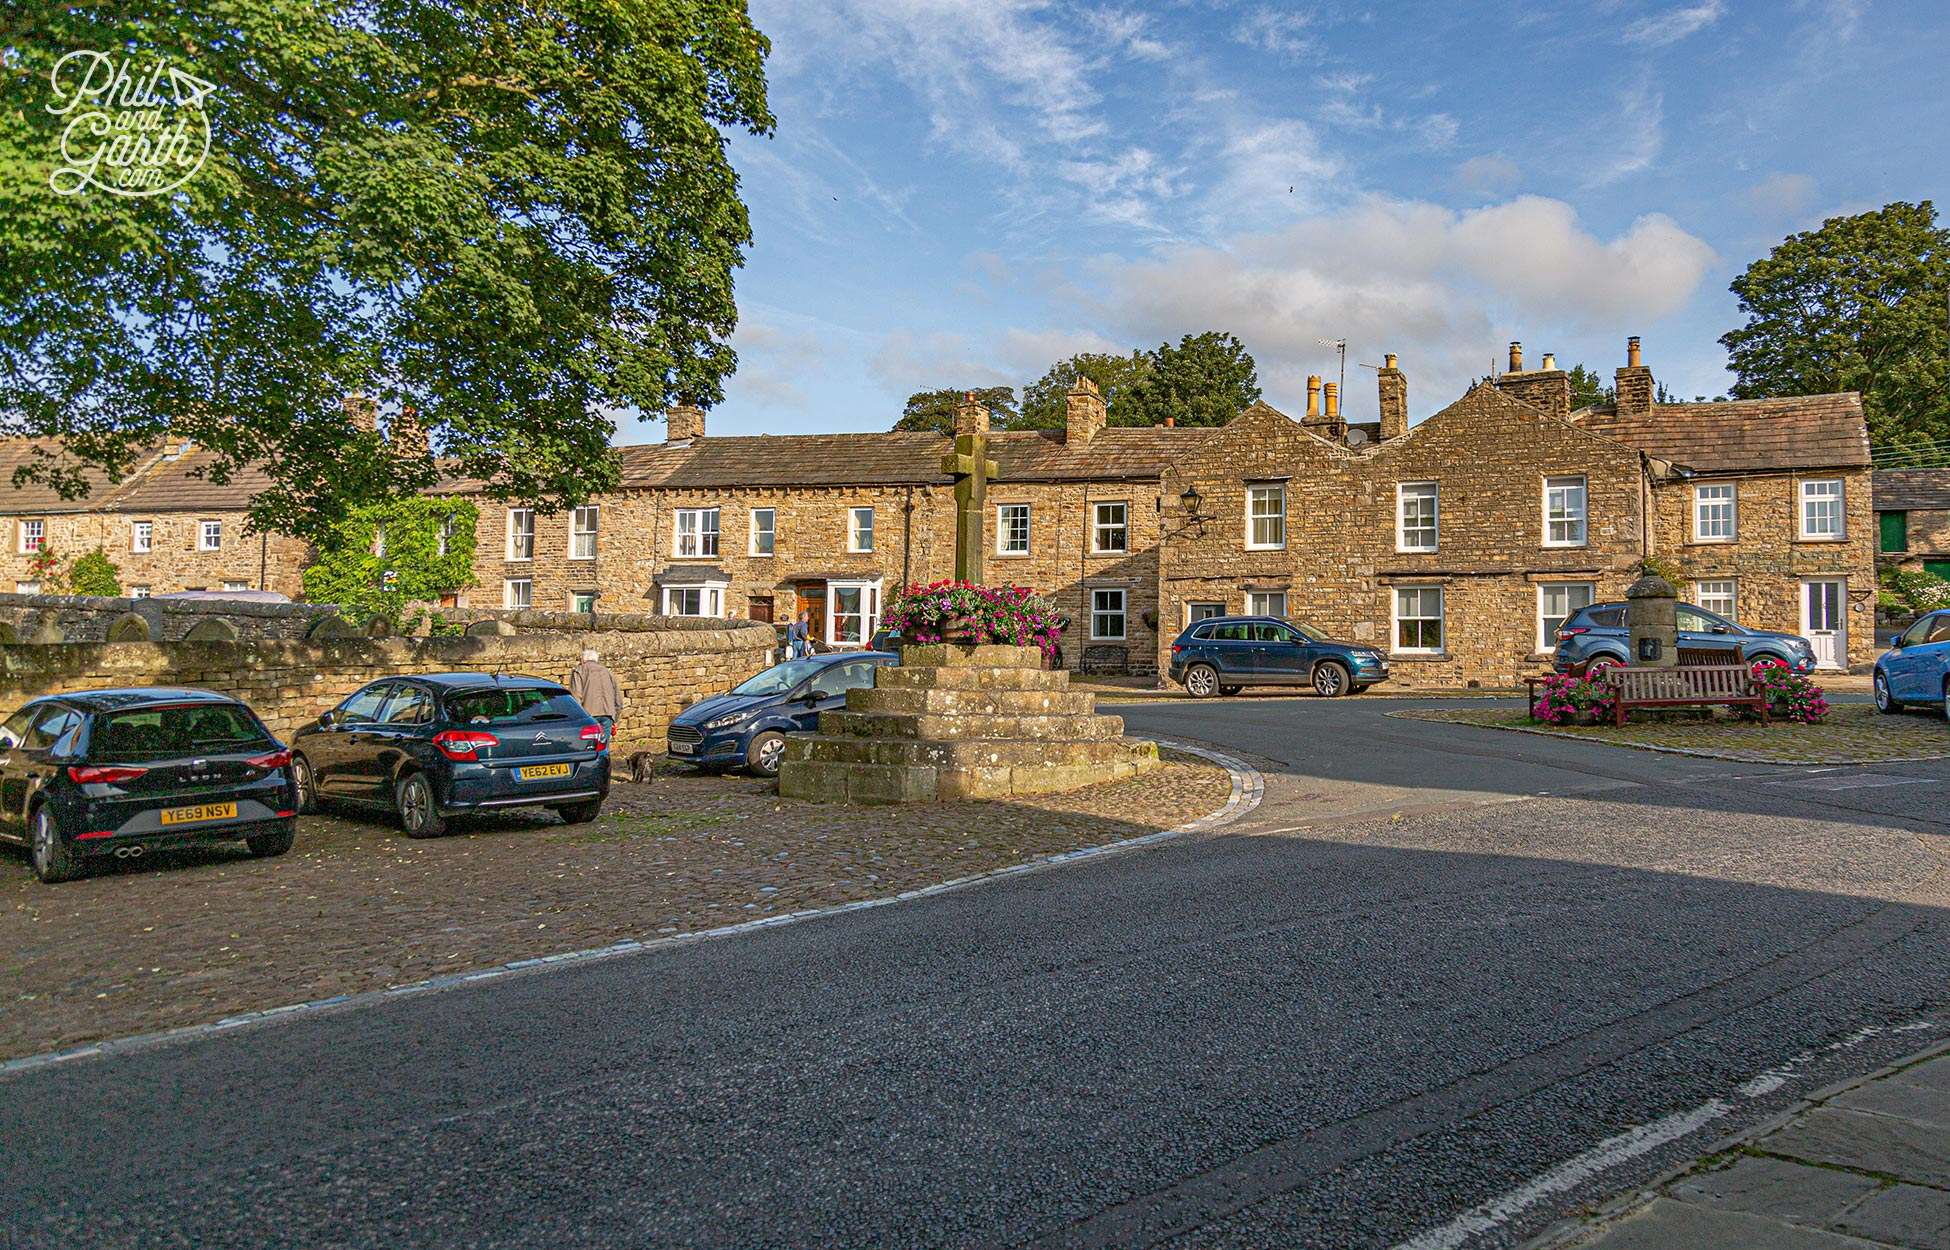 Askrigg, part of our guide to best Yorkshire Dales villages. It was made famous by the BBC TV series All Creatures Great and Small in the 1980s